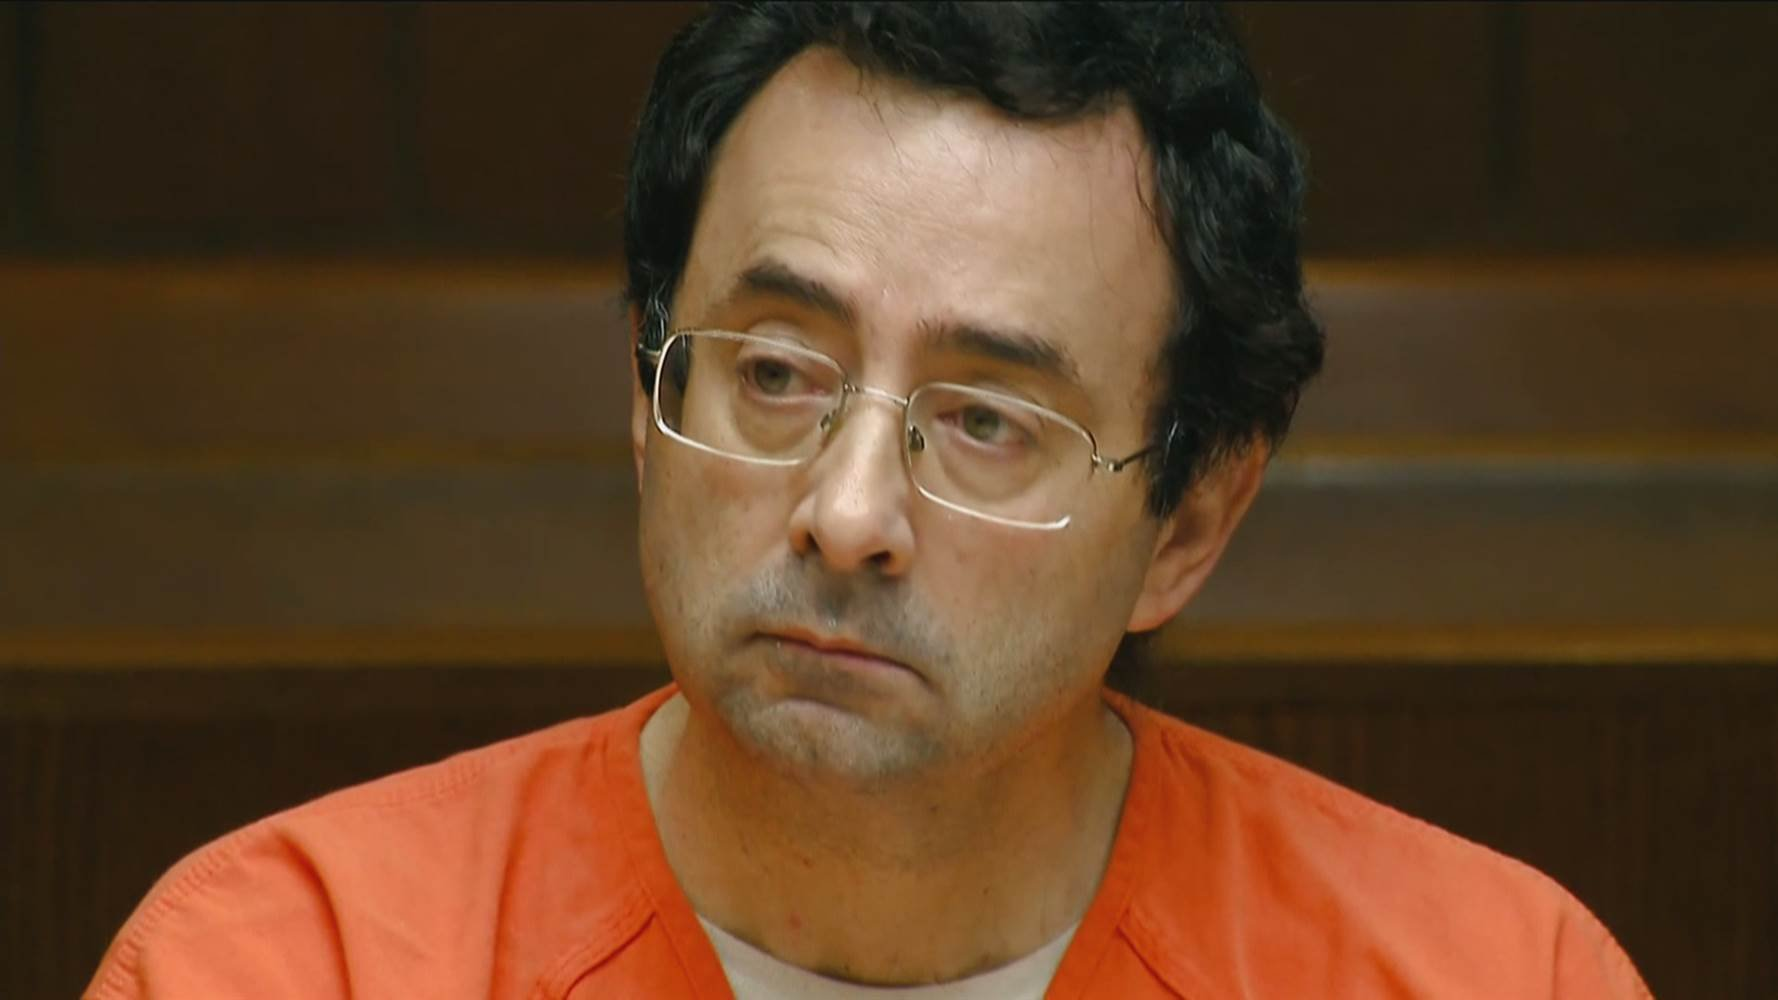 Disgraced former USA Gymnastics doctor sent to Arizona federal prison